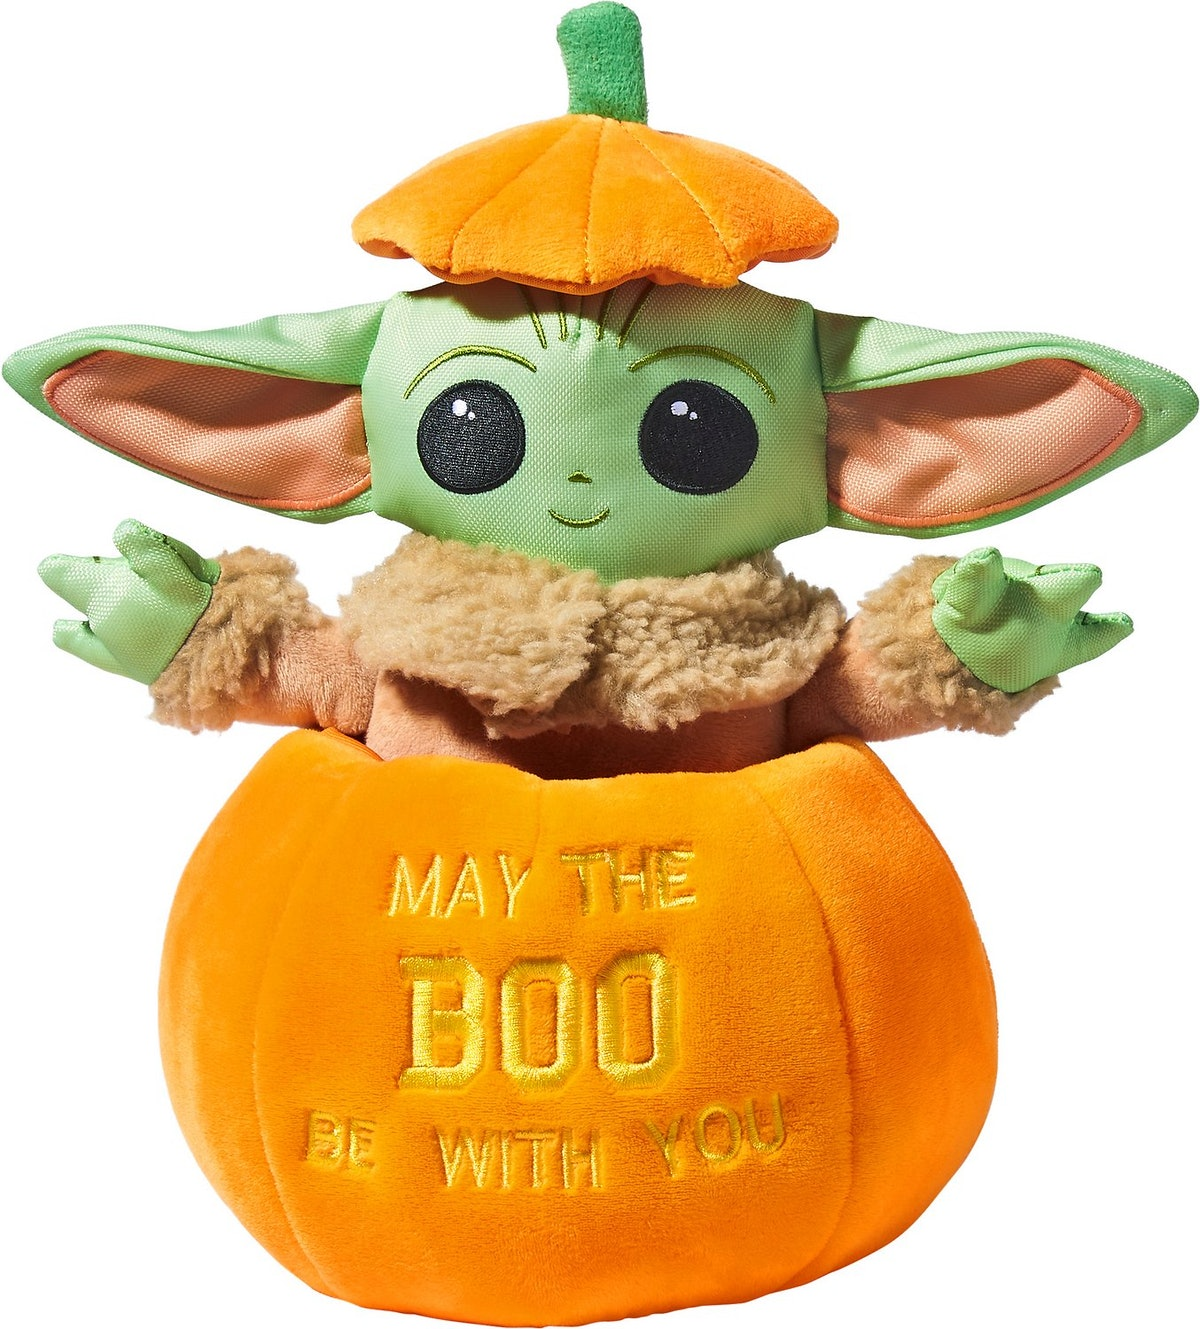 A Baby Yoda pumpkin dog toy is part of Chewy's Disney Halloween toy collection.